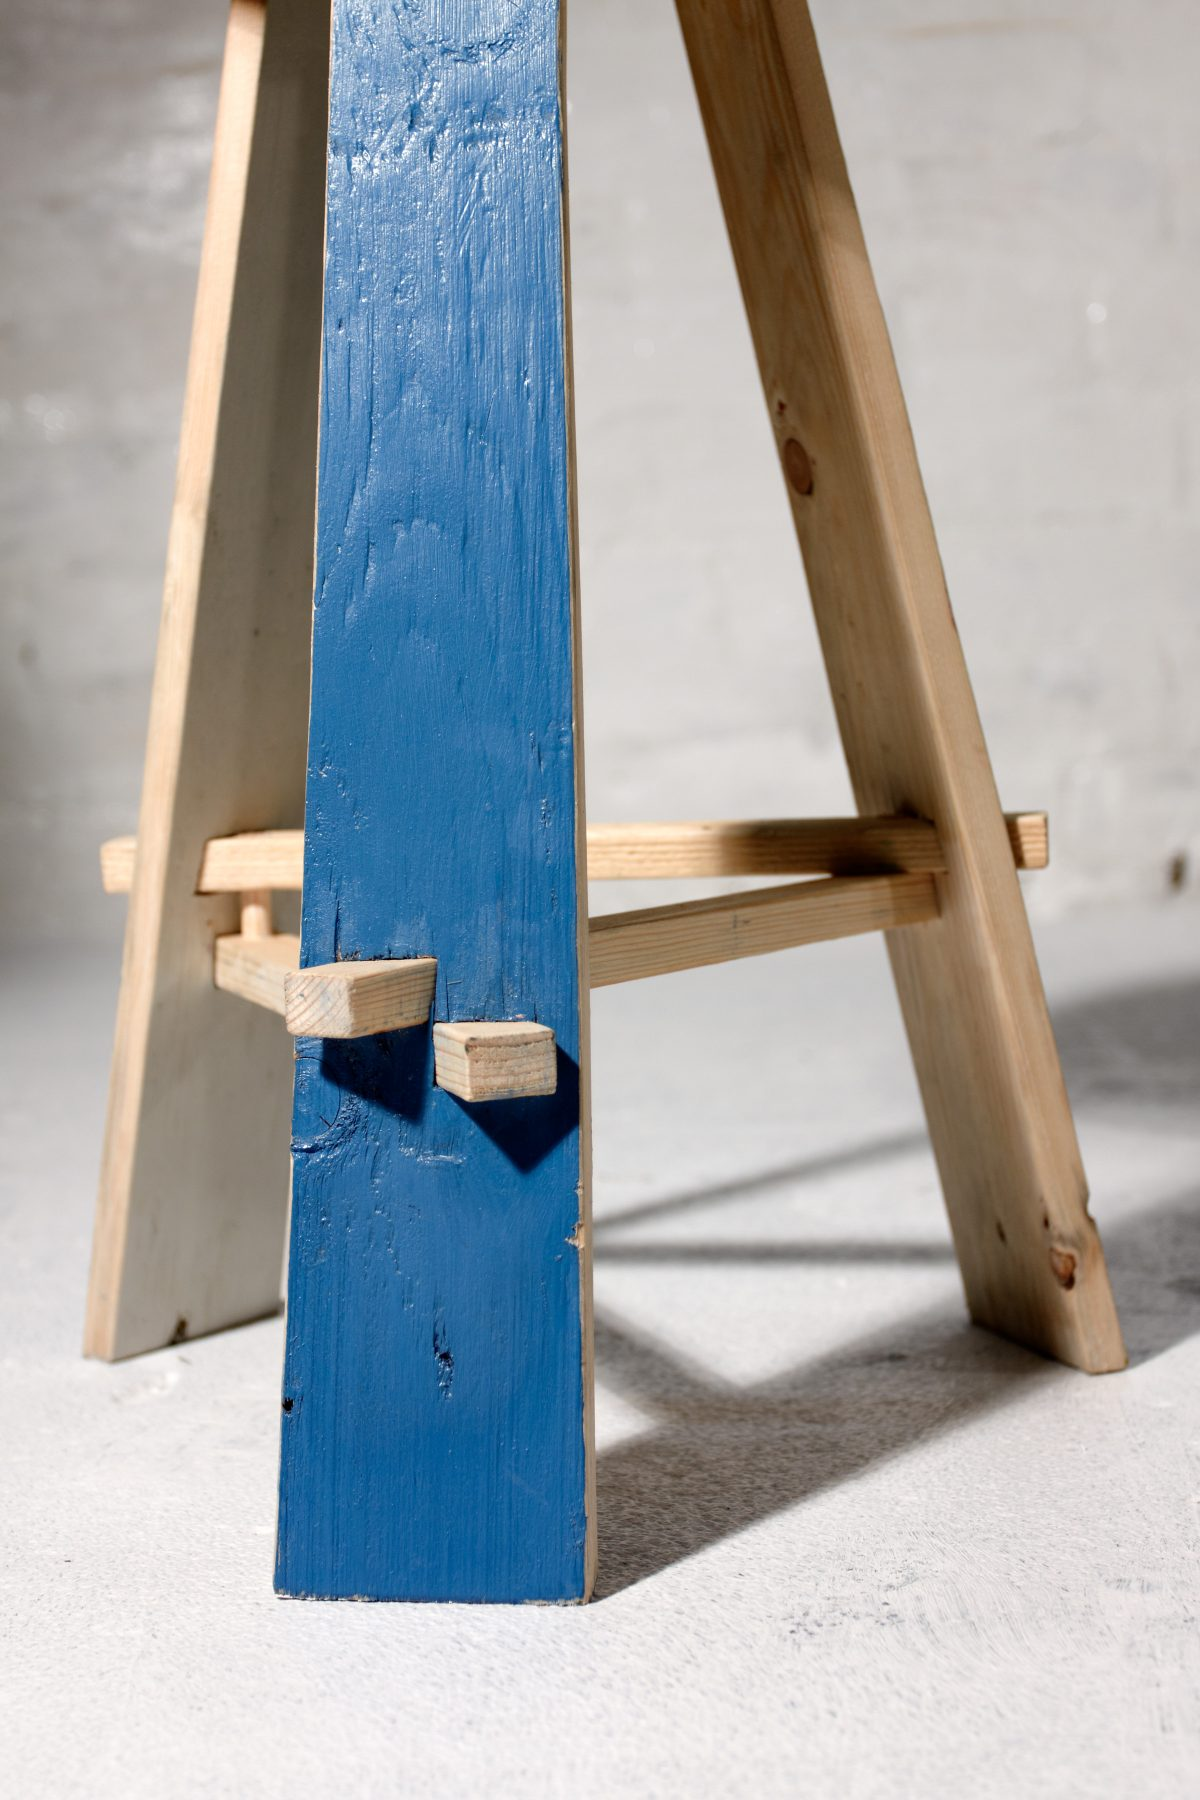 Jan Hendzel Studio gowlett stool-3